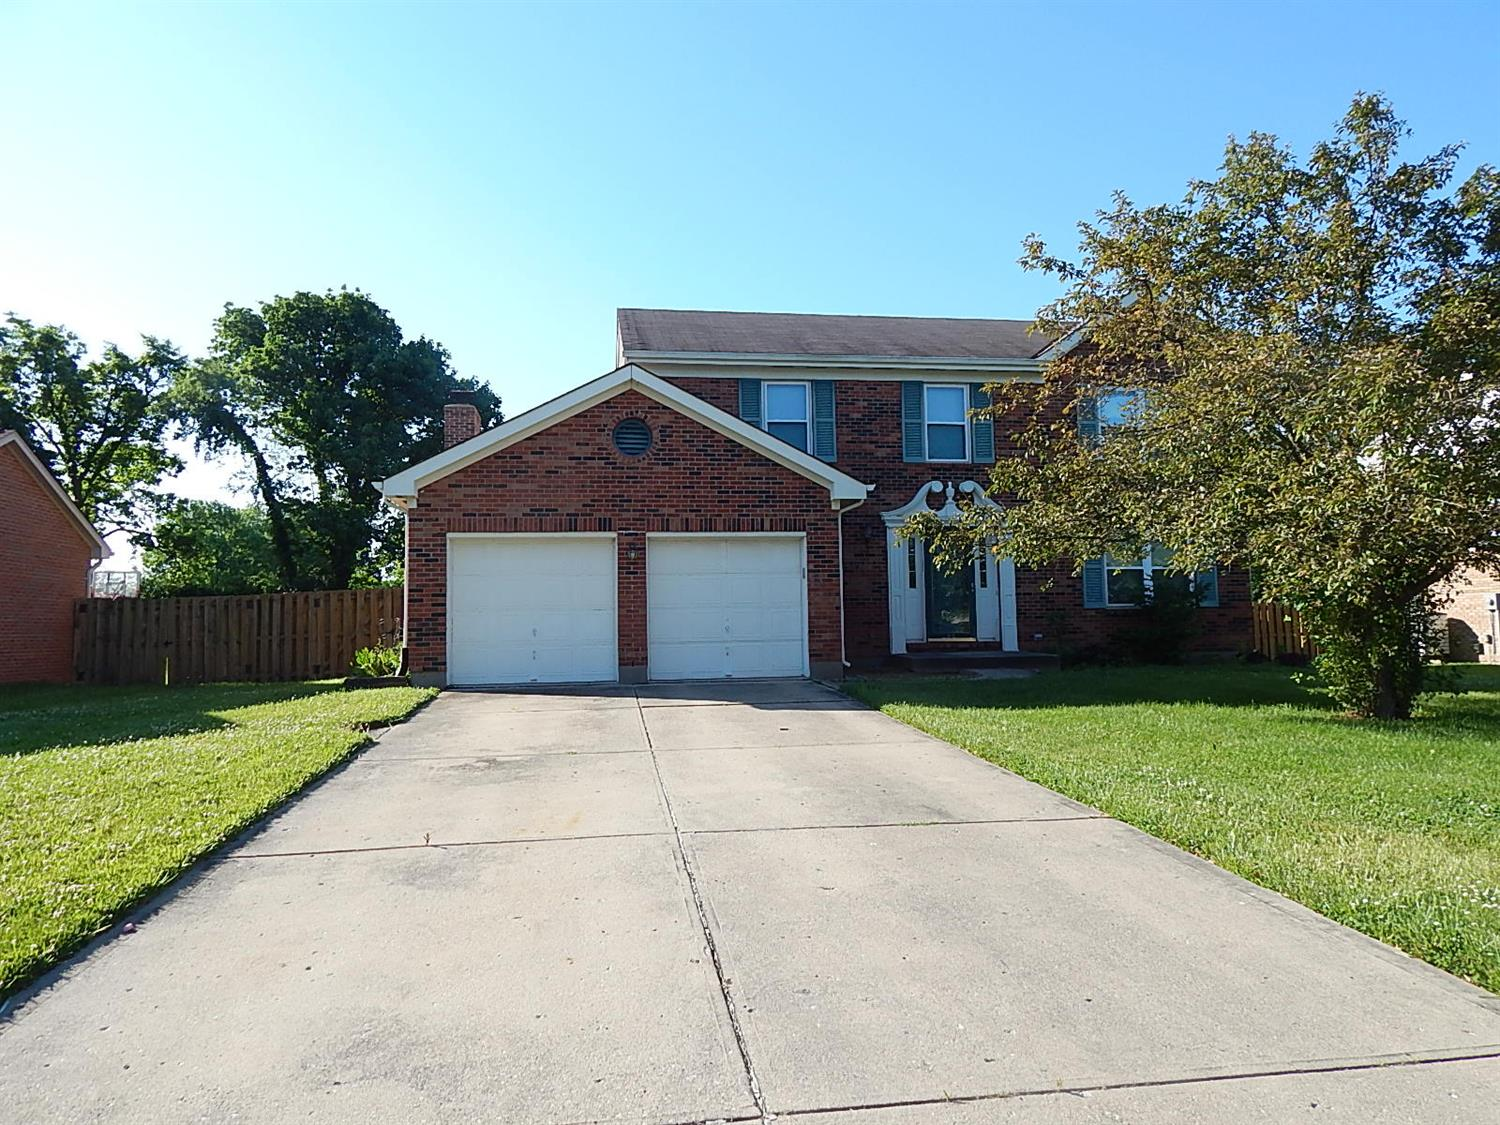 Photo 1 for 1471 Arlington Dr Florence, KY 41042